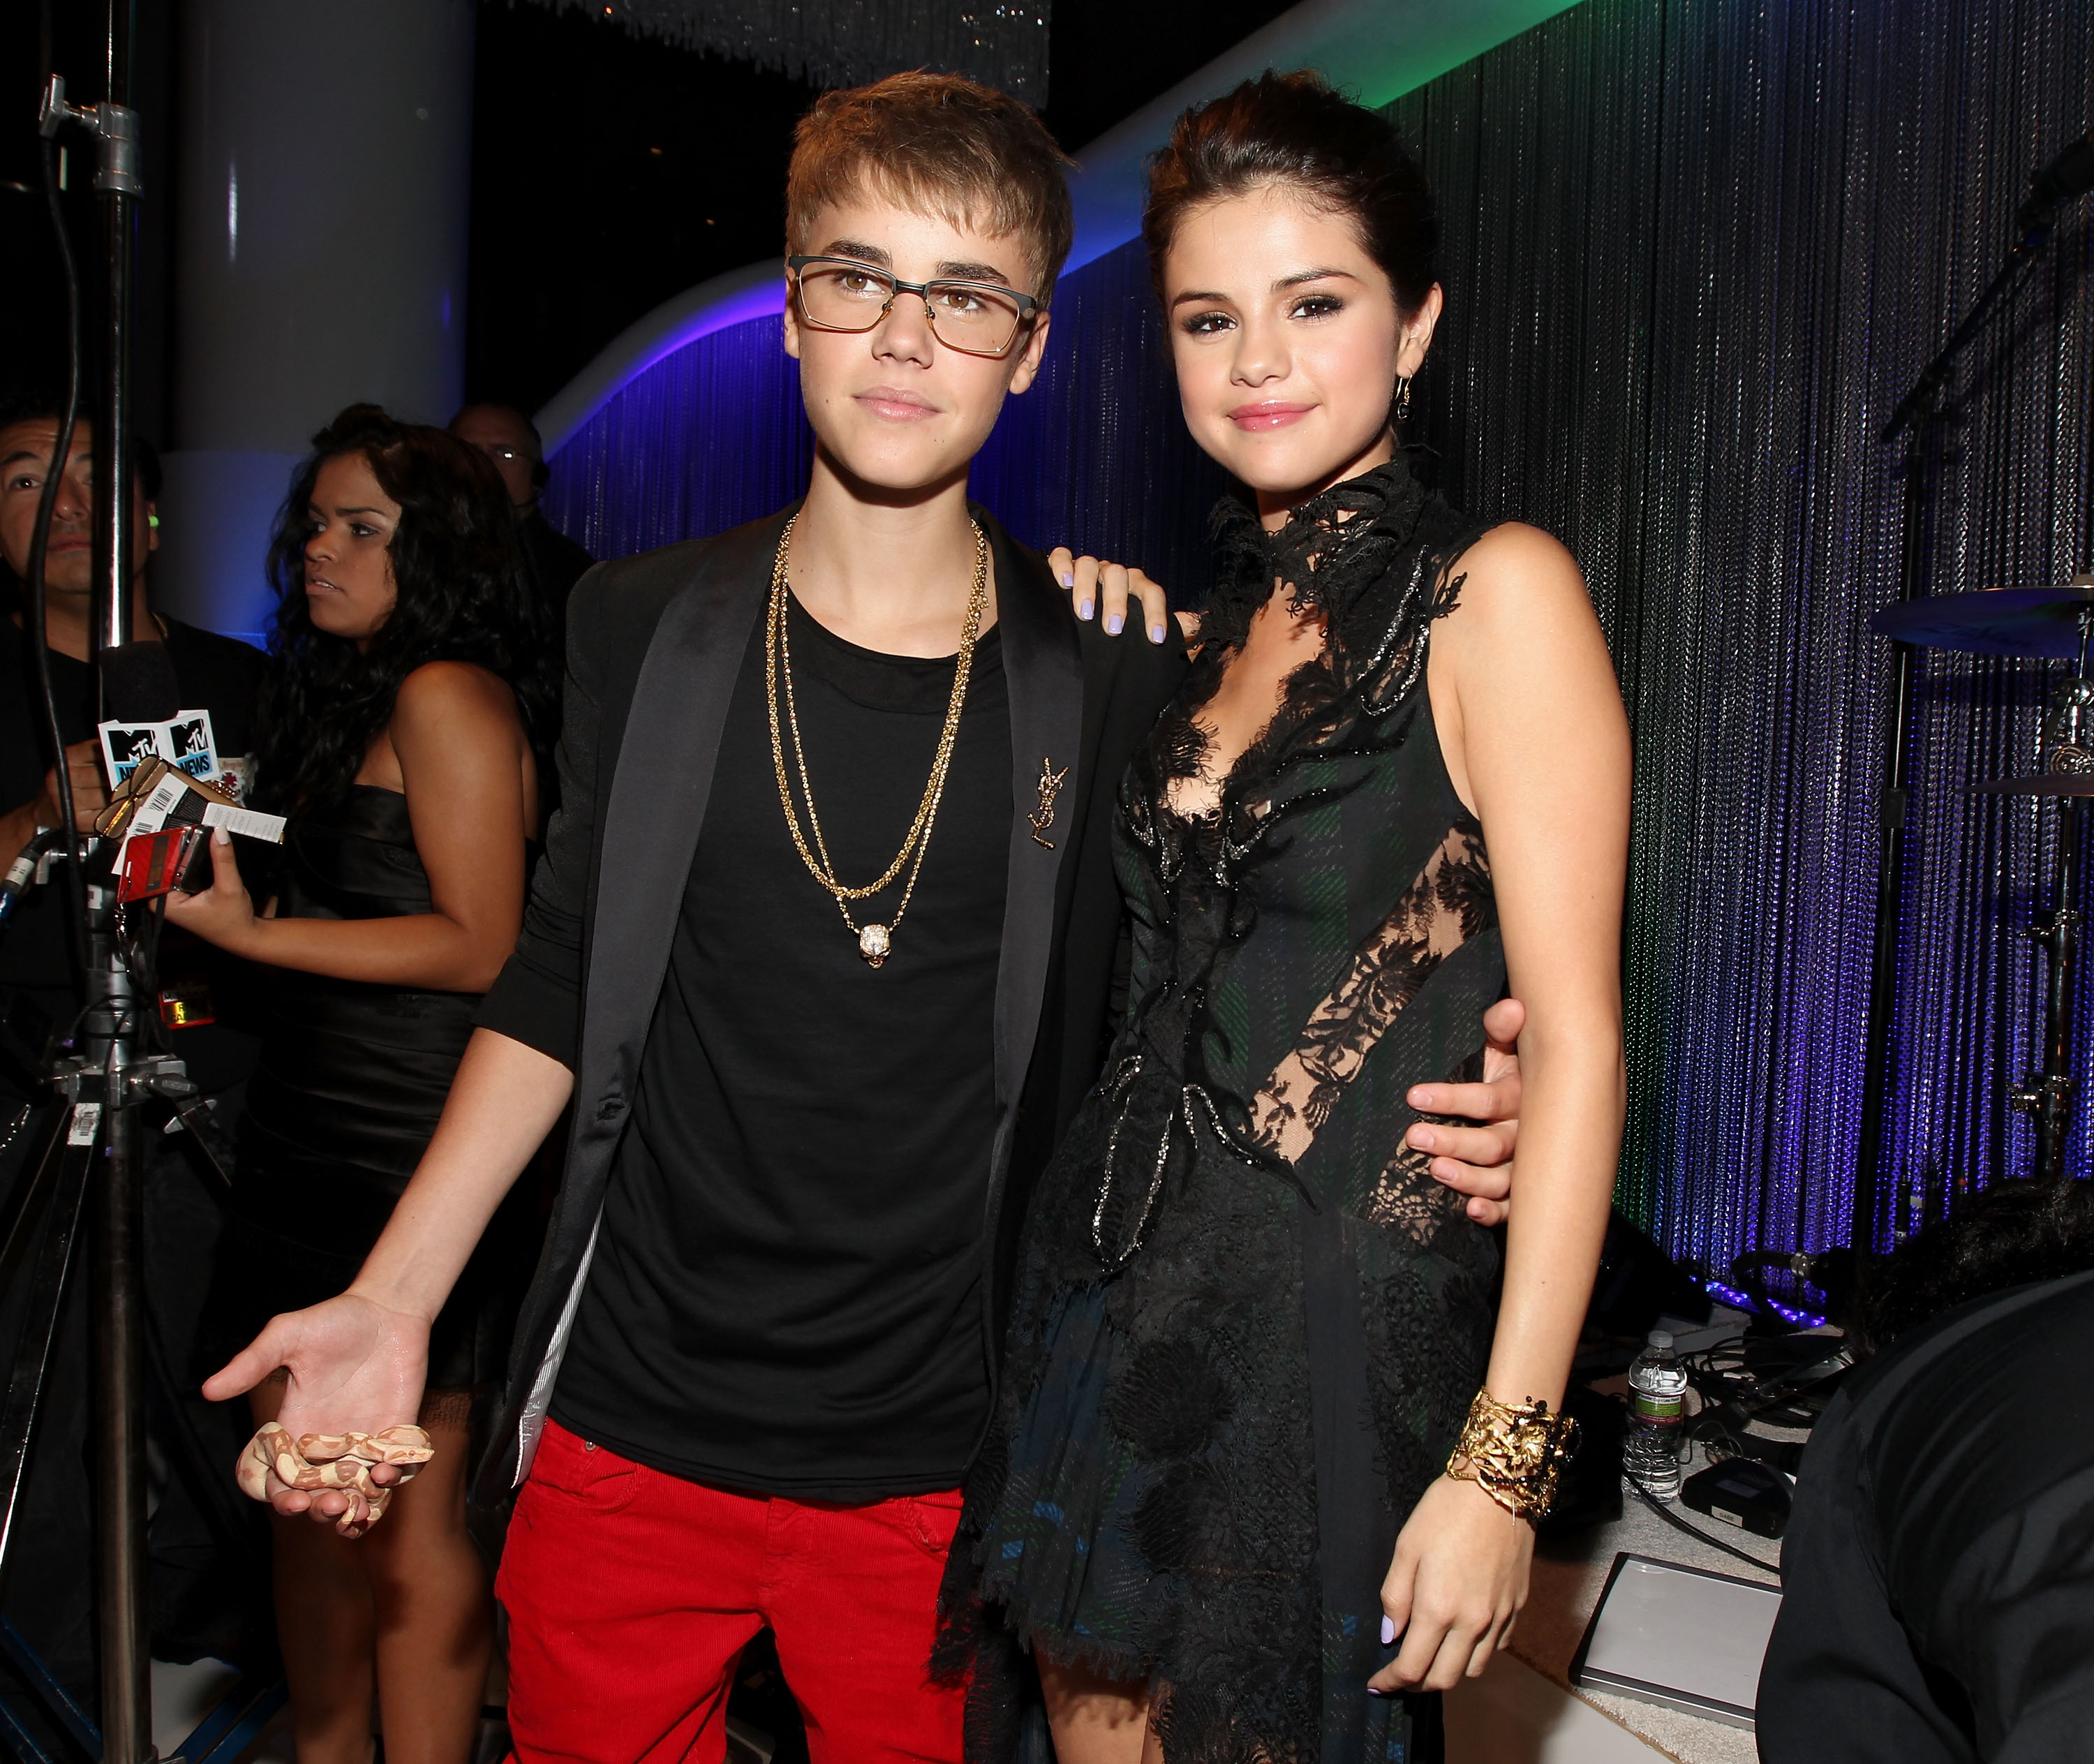 LOS ANGELES, CA - AUGUST 28:  Singer Justin Bieber (L) and actress/singer Selena Gomez arrive at the 2011 MTV Video Music Awards at Nokia Theatre L.A. LIVE on August 28, 2011 in Los Angeles, California.  (Photo by Christopher Polk/Getty Images)